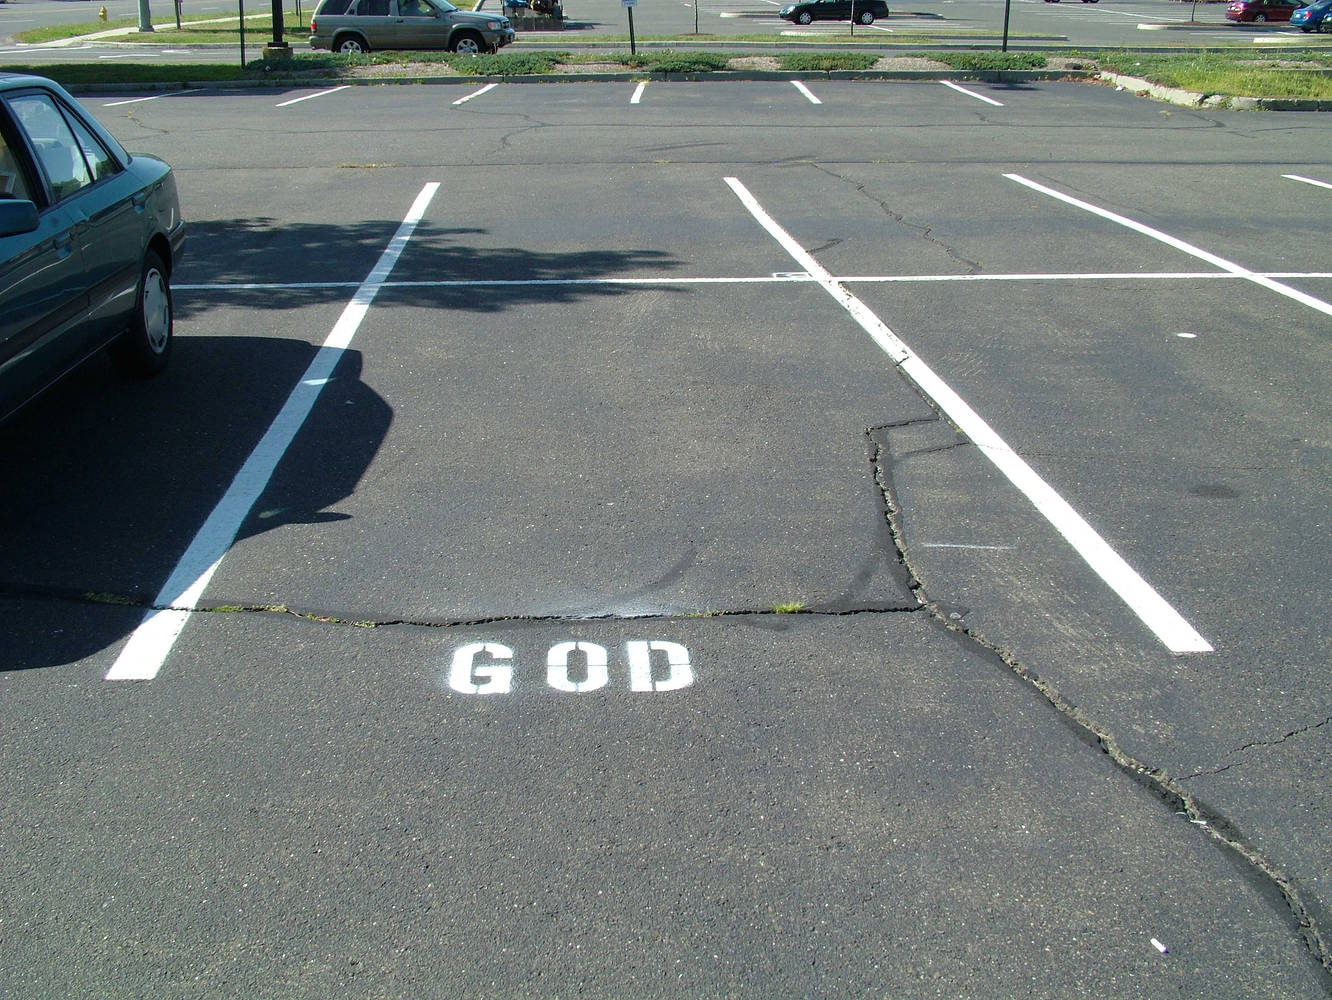 God's parking space, stencil by Ron Crowcroft